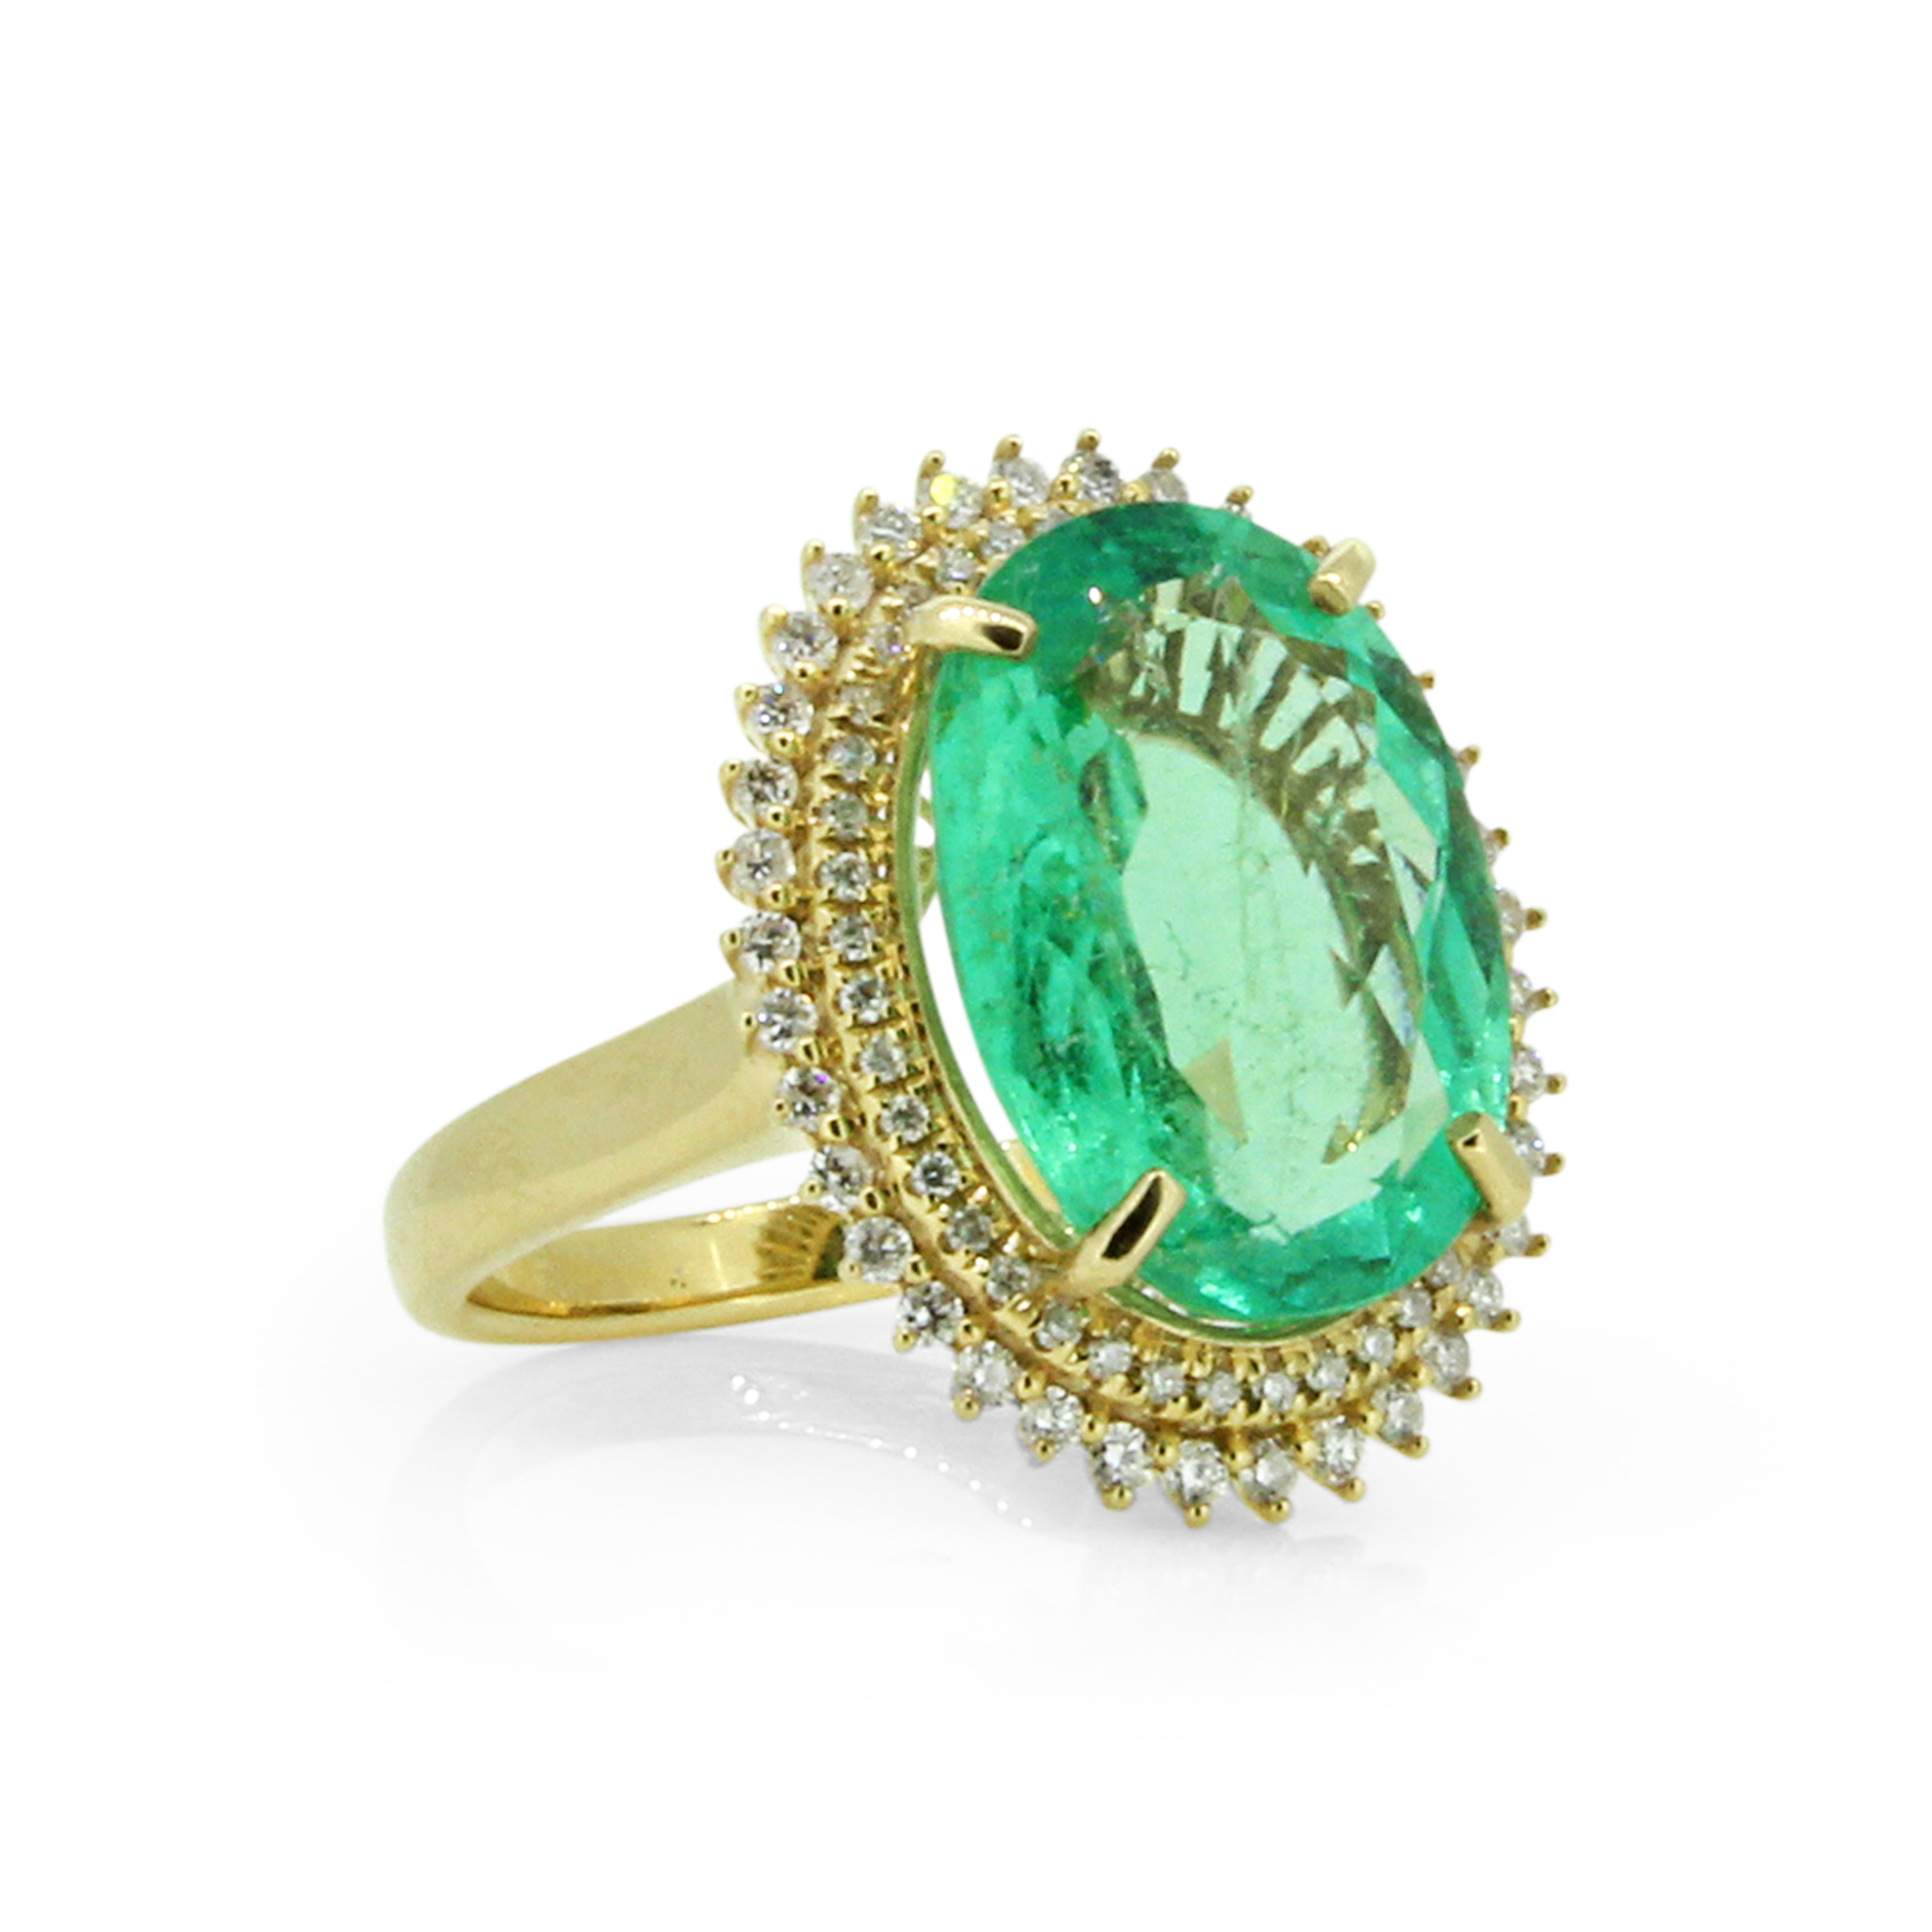 rings by emerald diamond moda a green operandi large ring loading of bayco kind emeral one